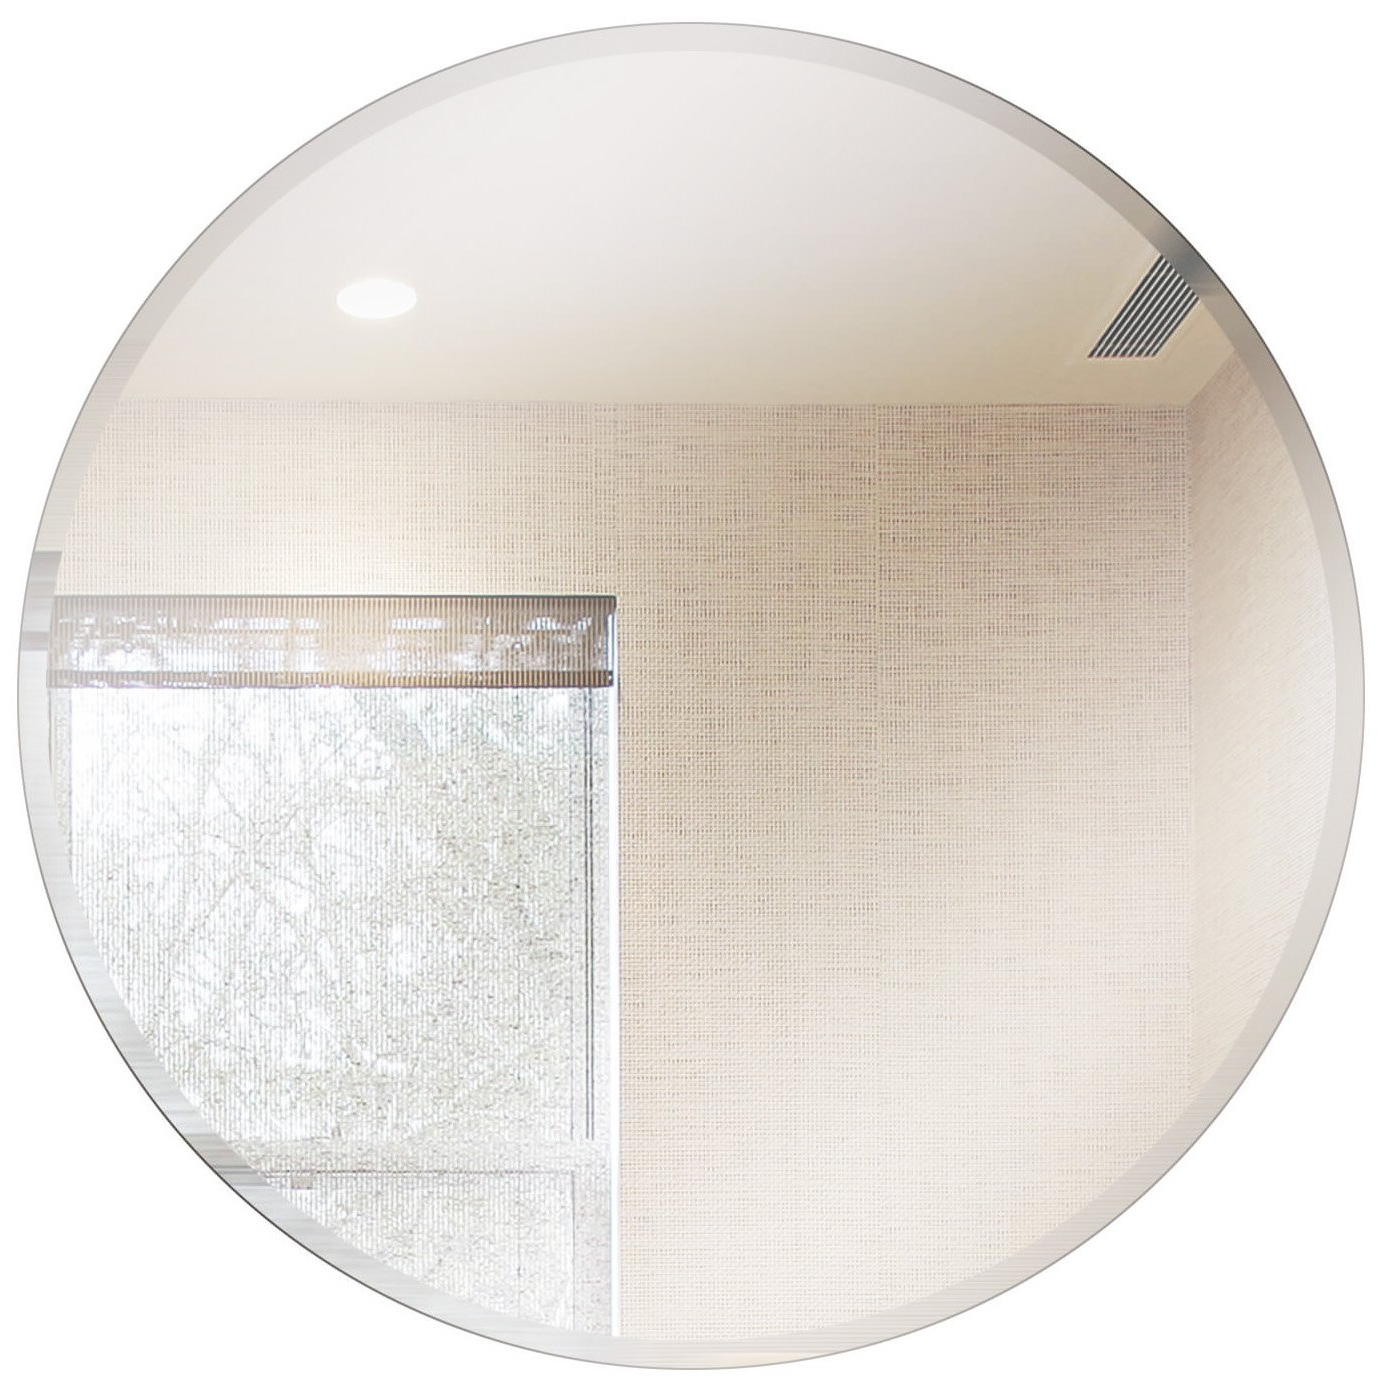 "Best And Newest Fab Glass And Mirror Round Beveled Polished Frameless Wall Mirror With  Hooks 18"" Inch Silver With Regard To Frameless Round Wall Mirrors (View 5 of 20)"